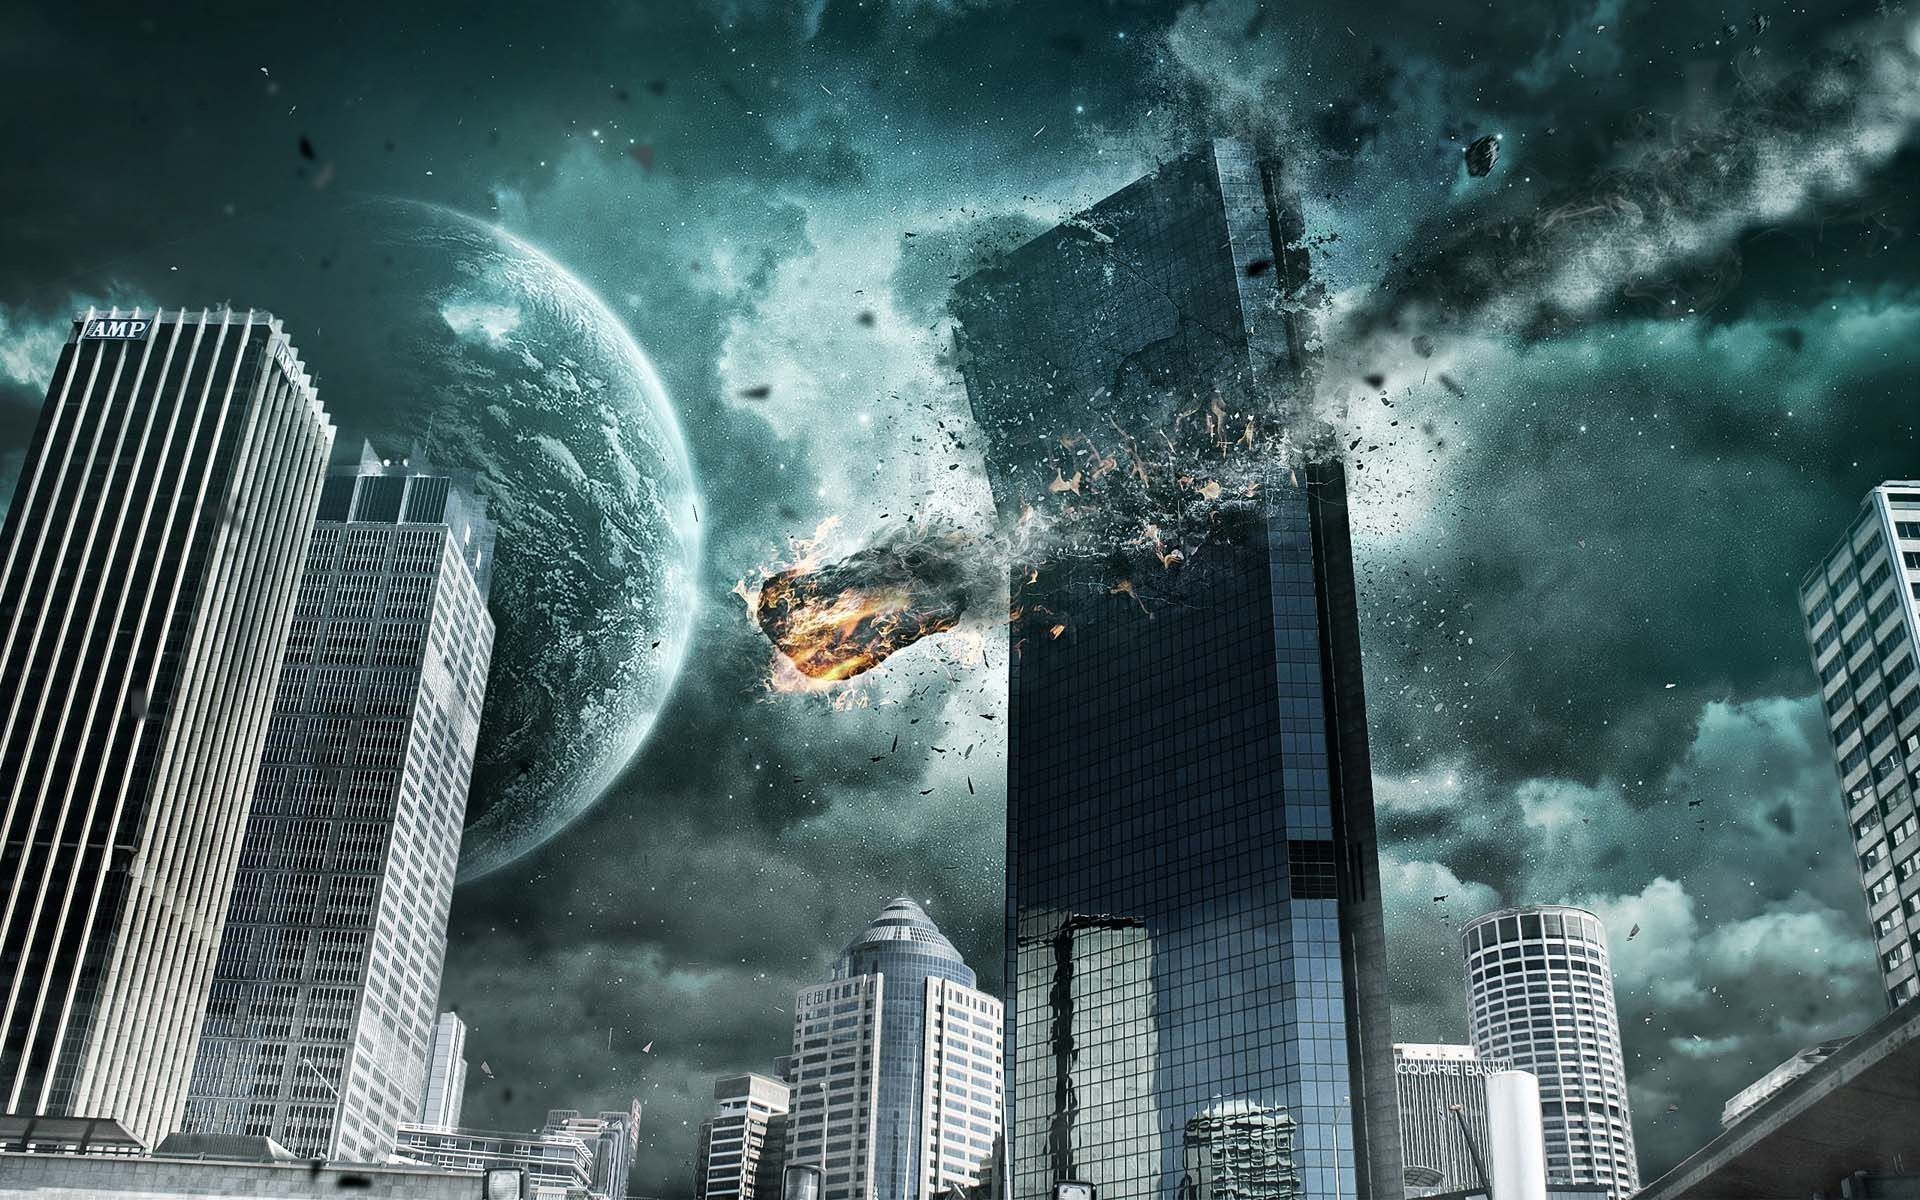 1920x1200 City Destroyed By Aliens 4k Ultra Hd Backgrounds Wallpaper City Background Background Pictures Background